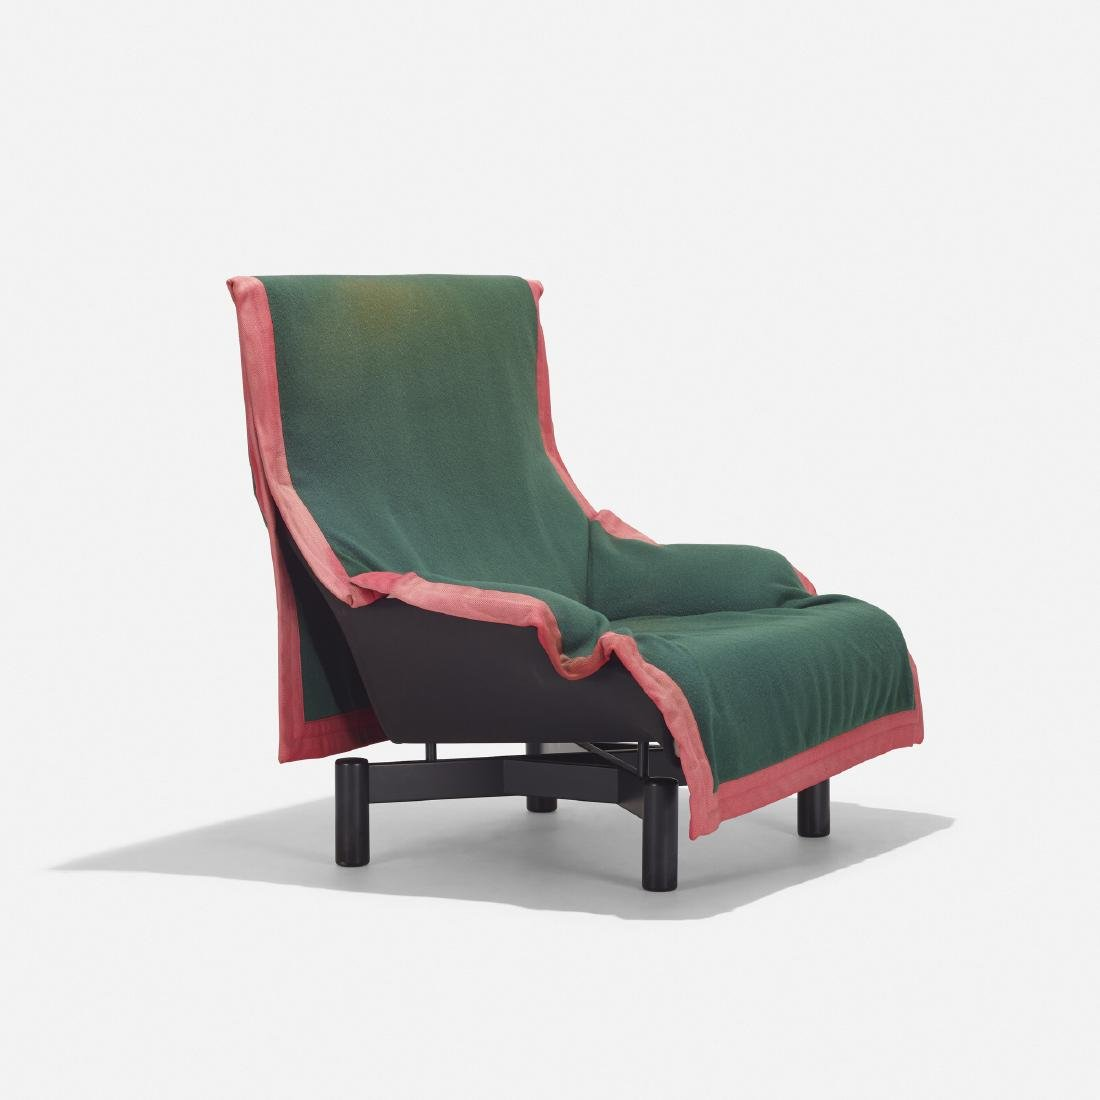 Vico Magistretti, Sinbad lounge chair